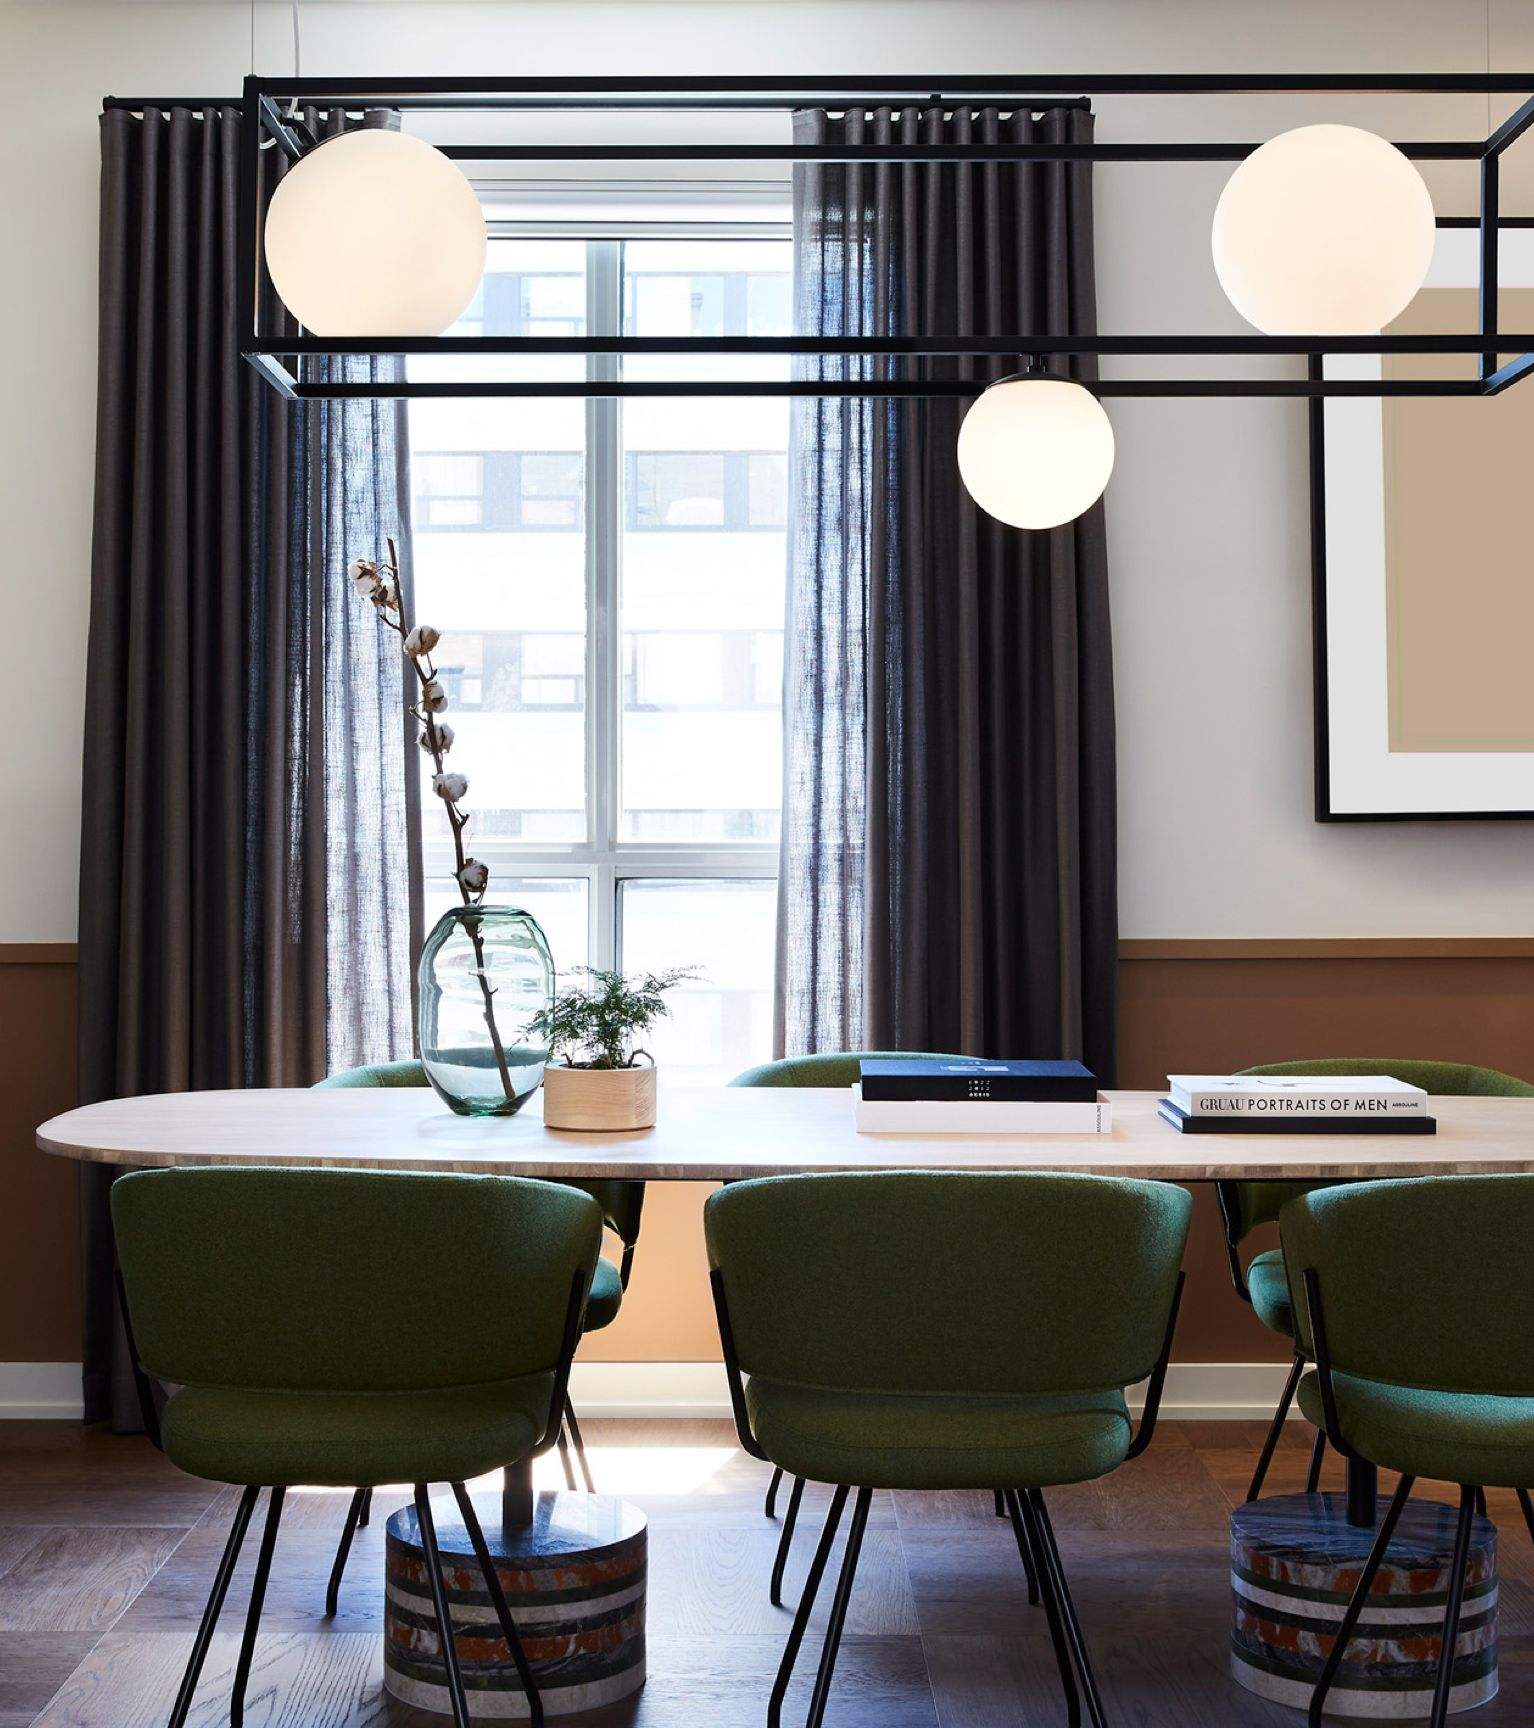 Modern hanging geometric chandelier in kitchen of Kimpton Hotel, Toronto, Canada